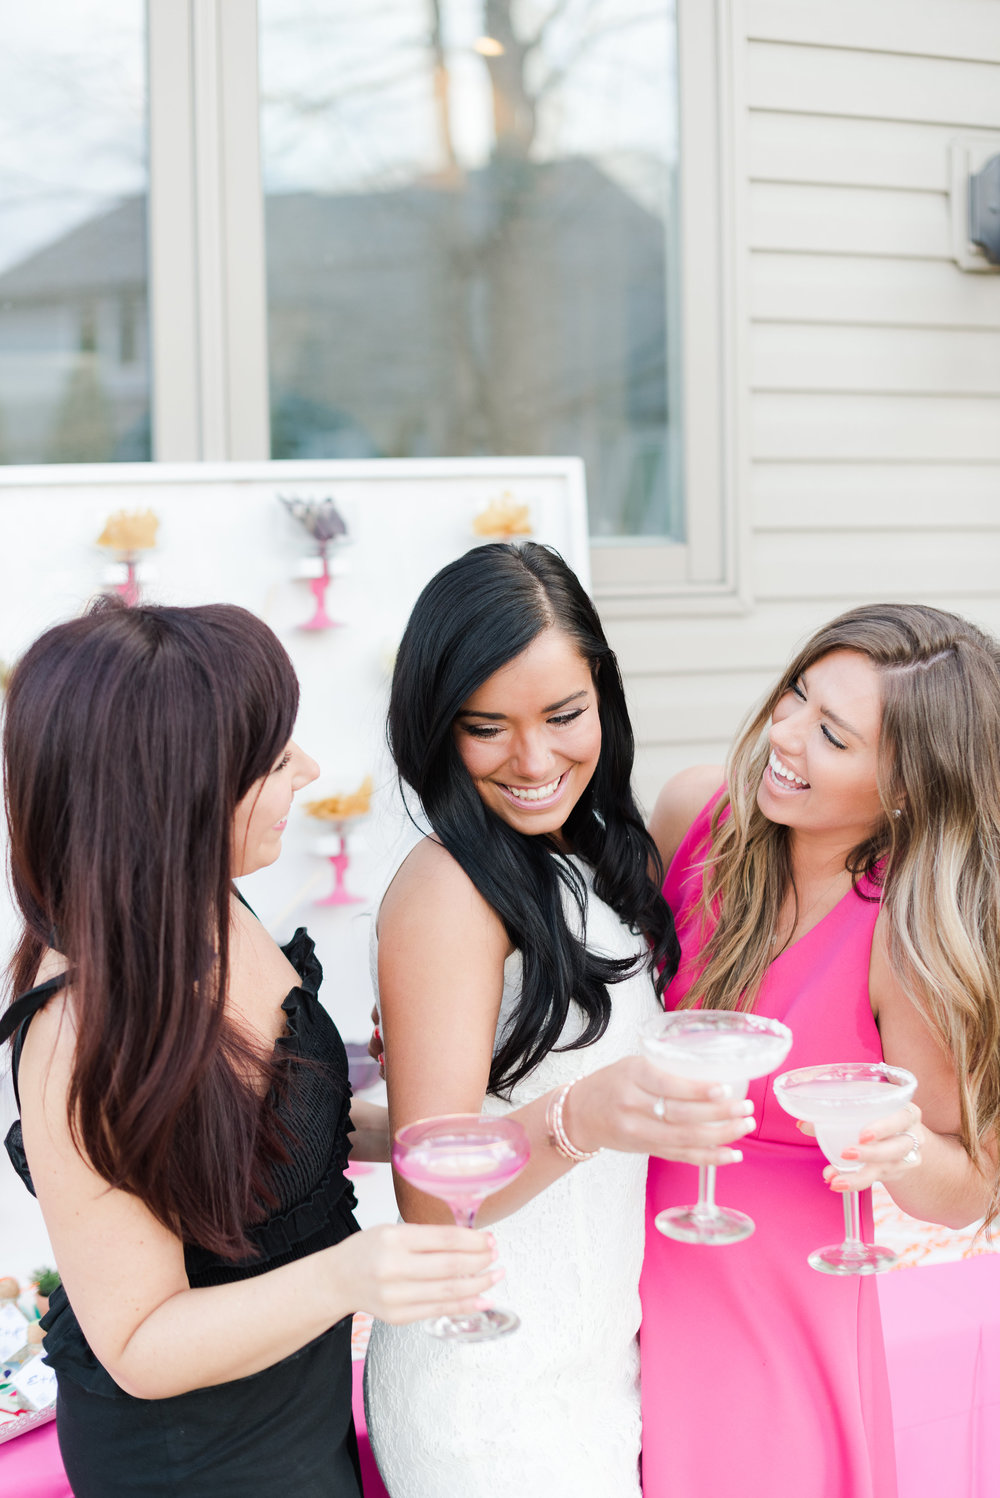 Fiesta-Party-Inspiration-by-Event-Prep-Cassandra-Clair-Photograpy-Amanda-Collins-51.jpg